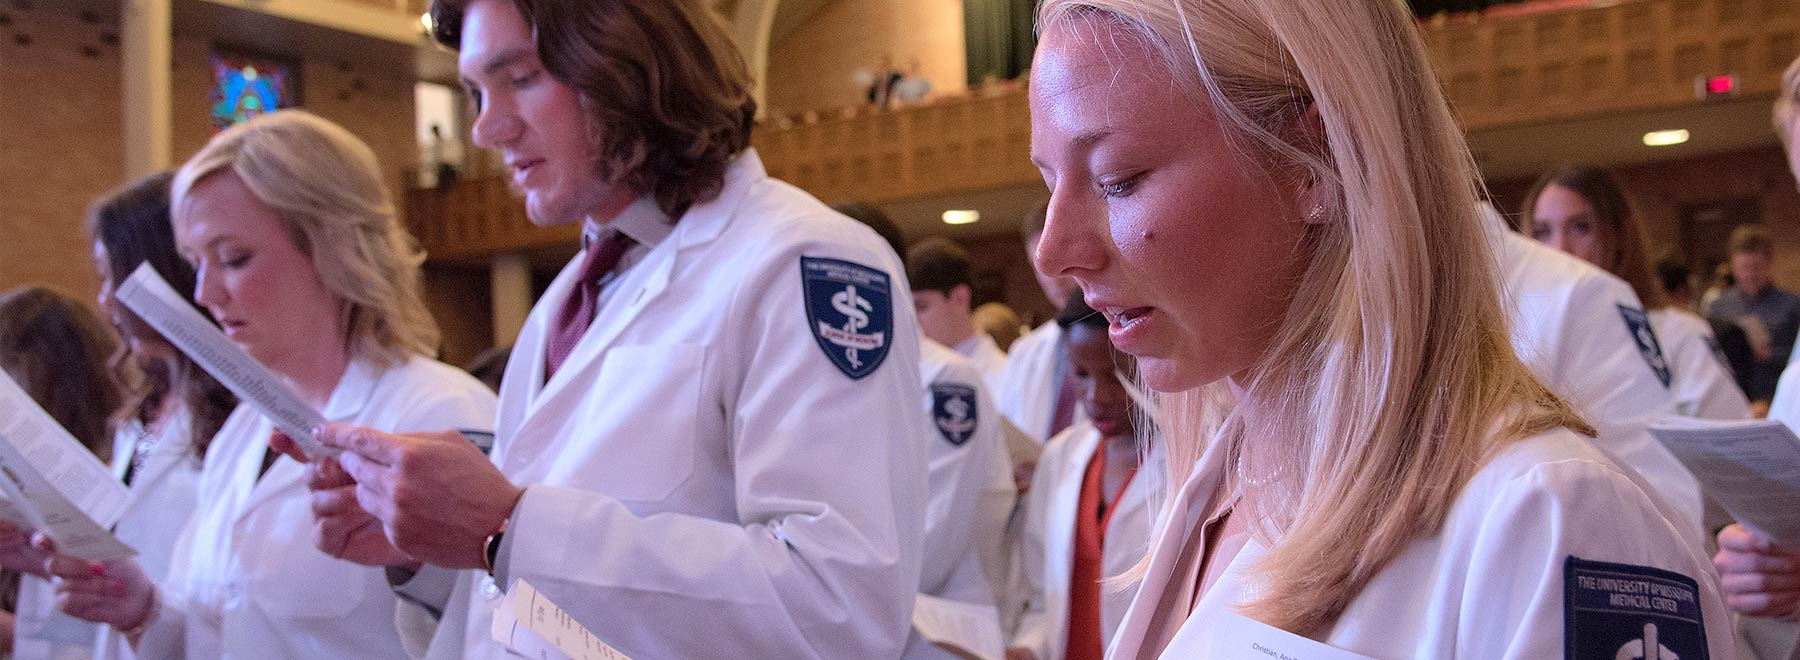 Medical students reciting Hippocratic oath